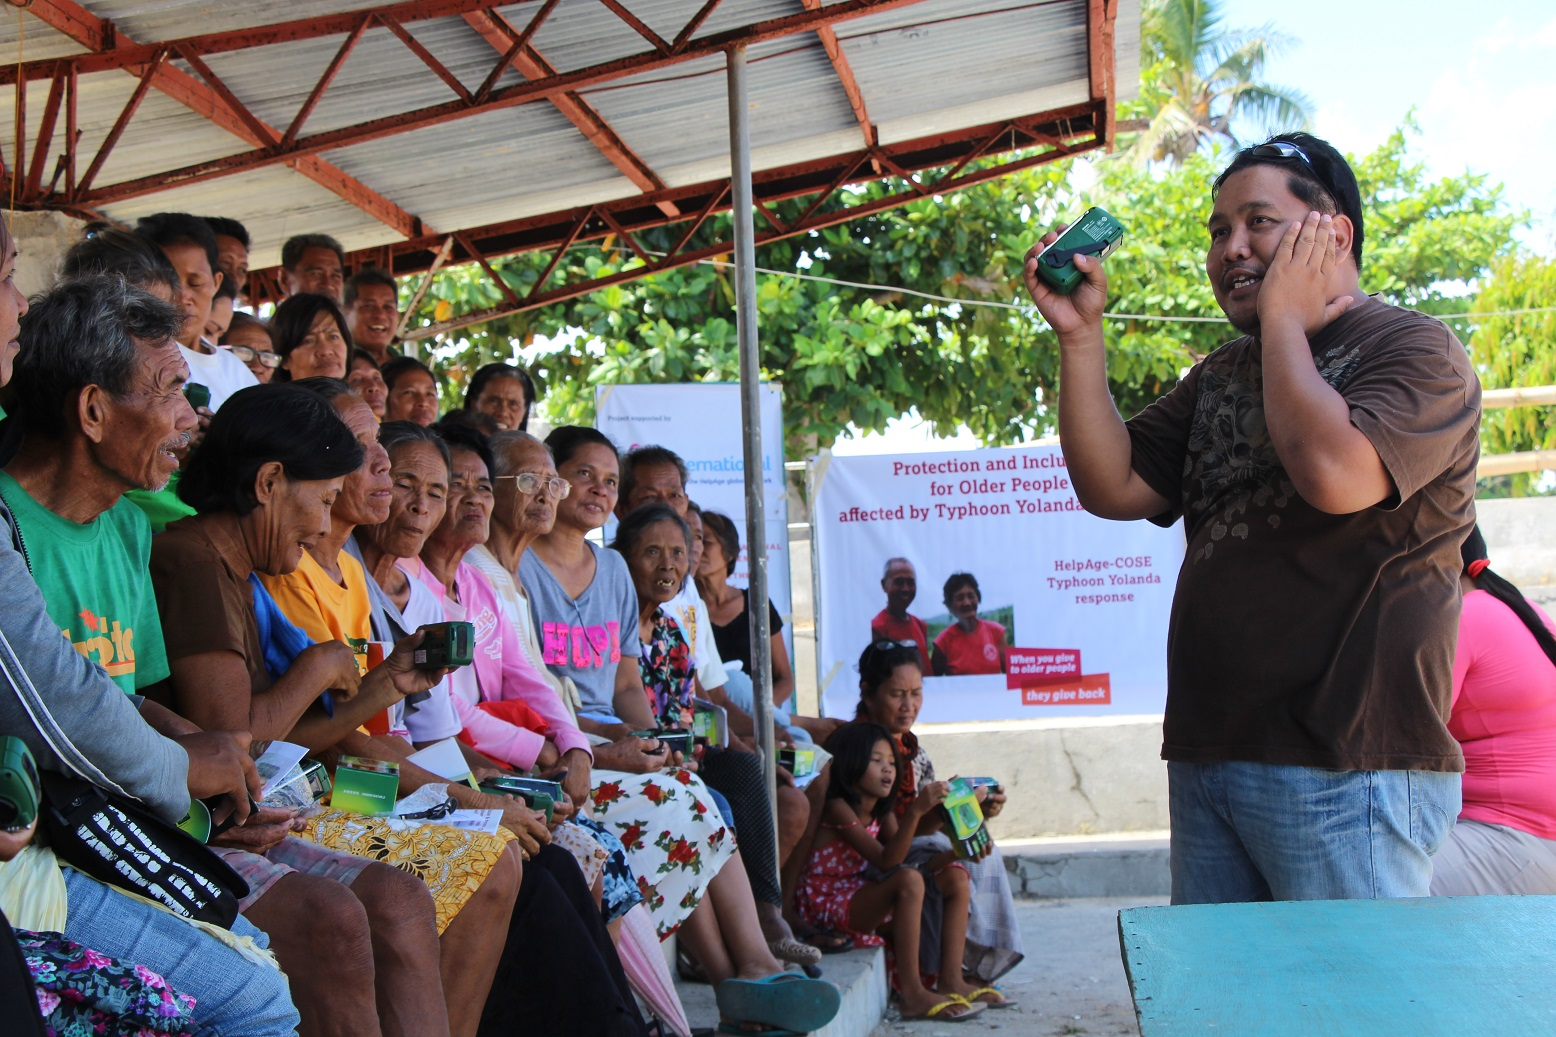 Radios are handed out to older people in the Philippines.